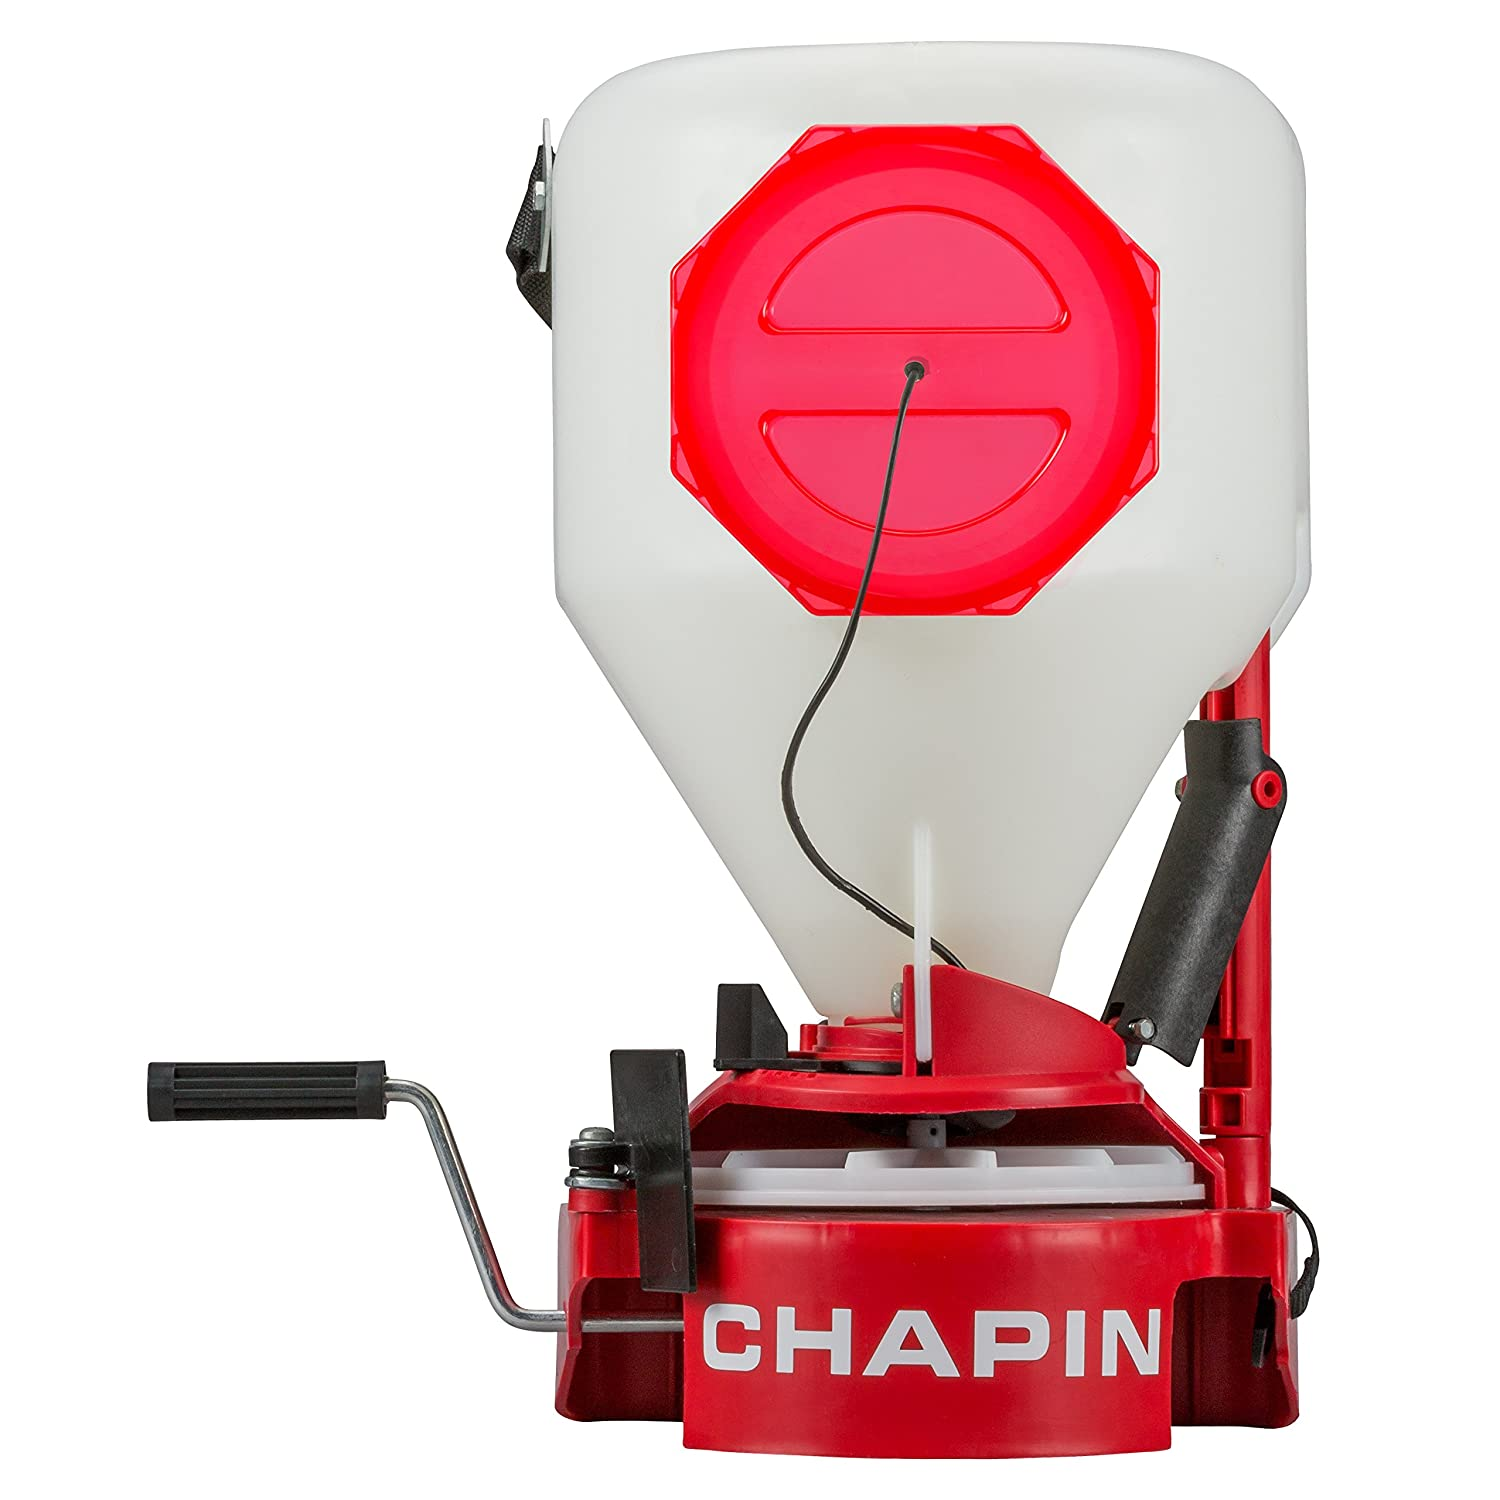 Chapin 8700A Chest Mount with Easy Fill Hopper Lawn Spreader, 35-Pounds, Translucent White Tank Chapin International Inc.